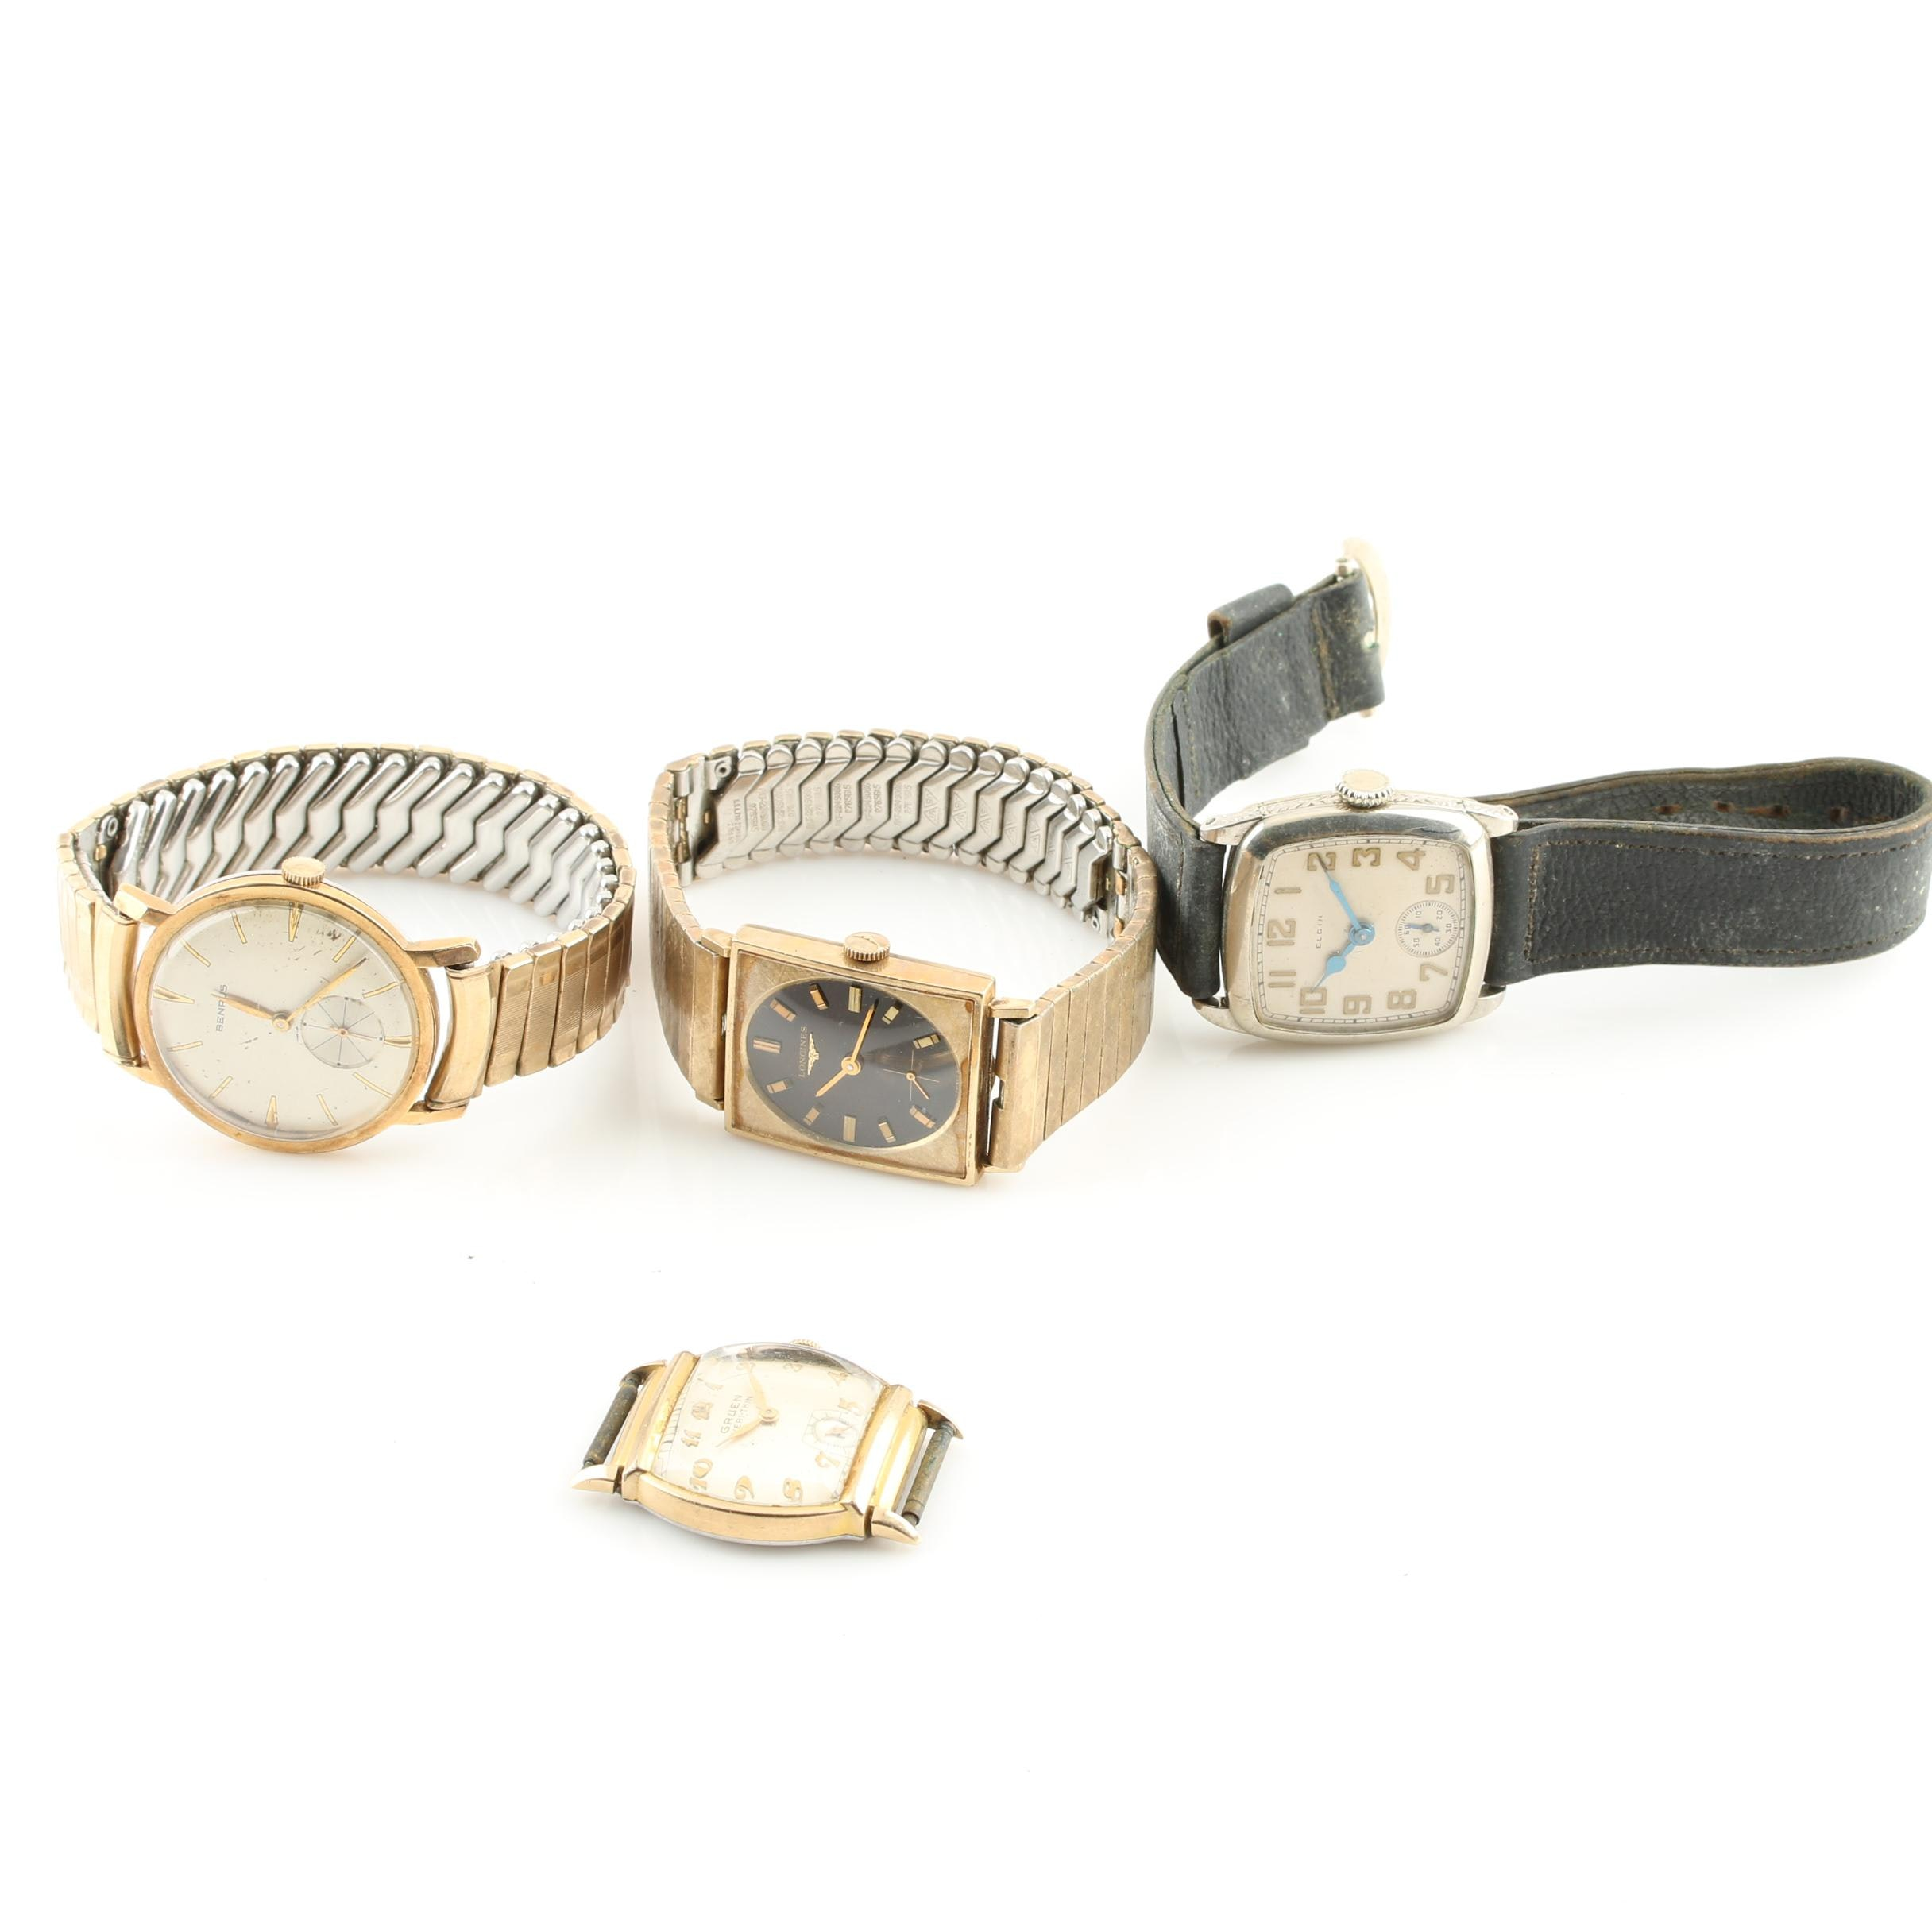 Assortment of Analog Watches